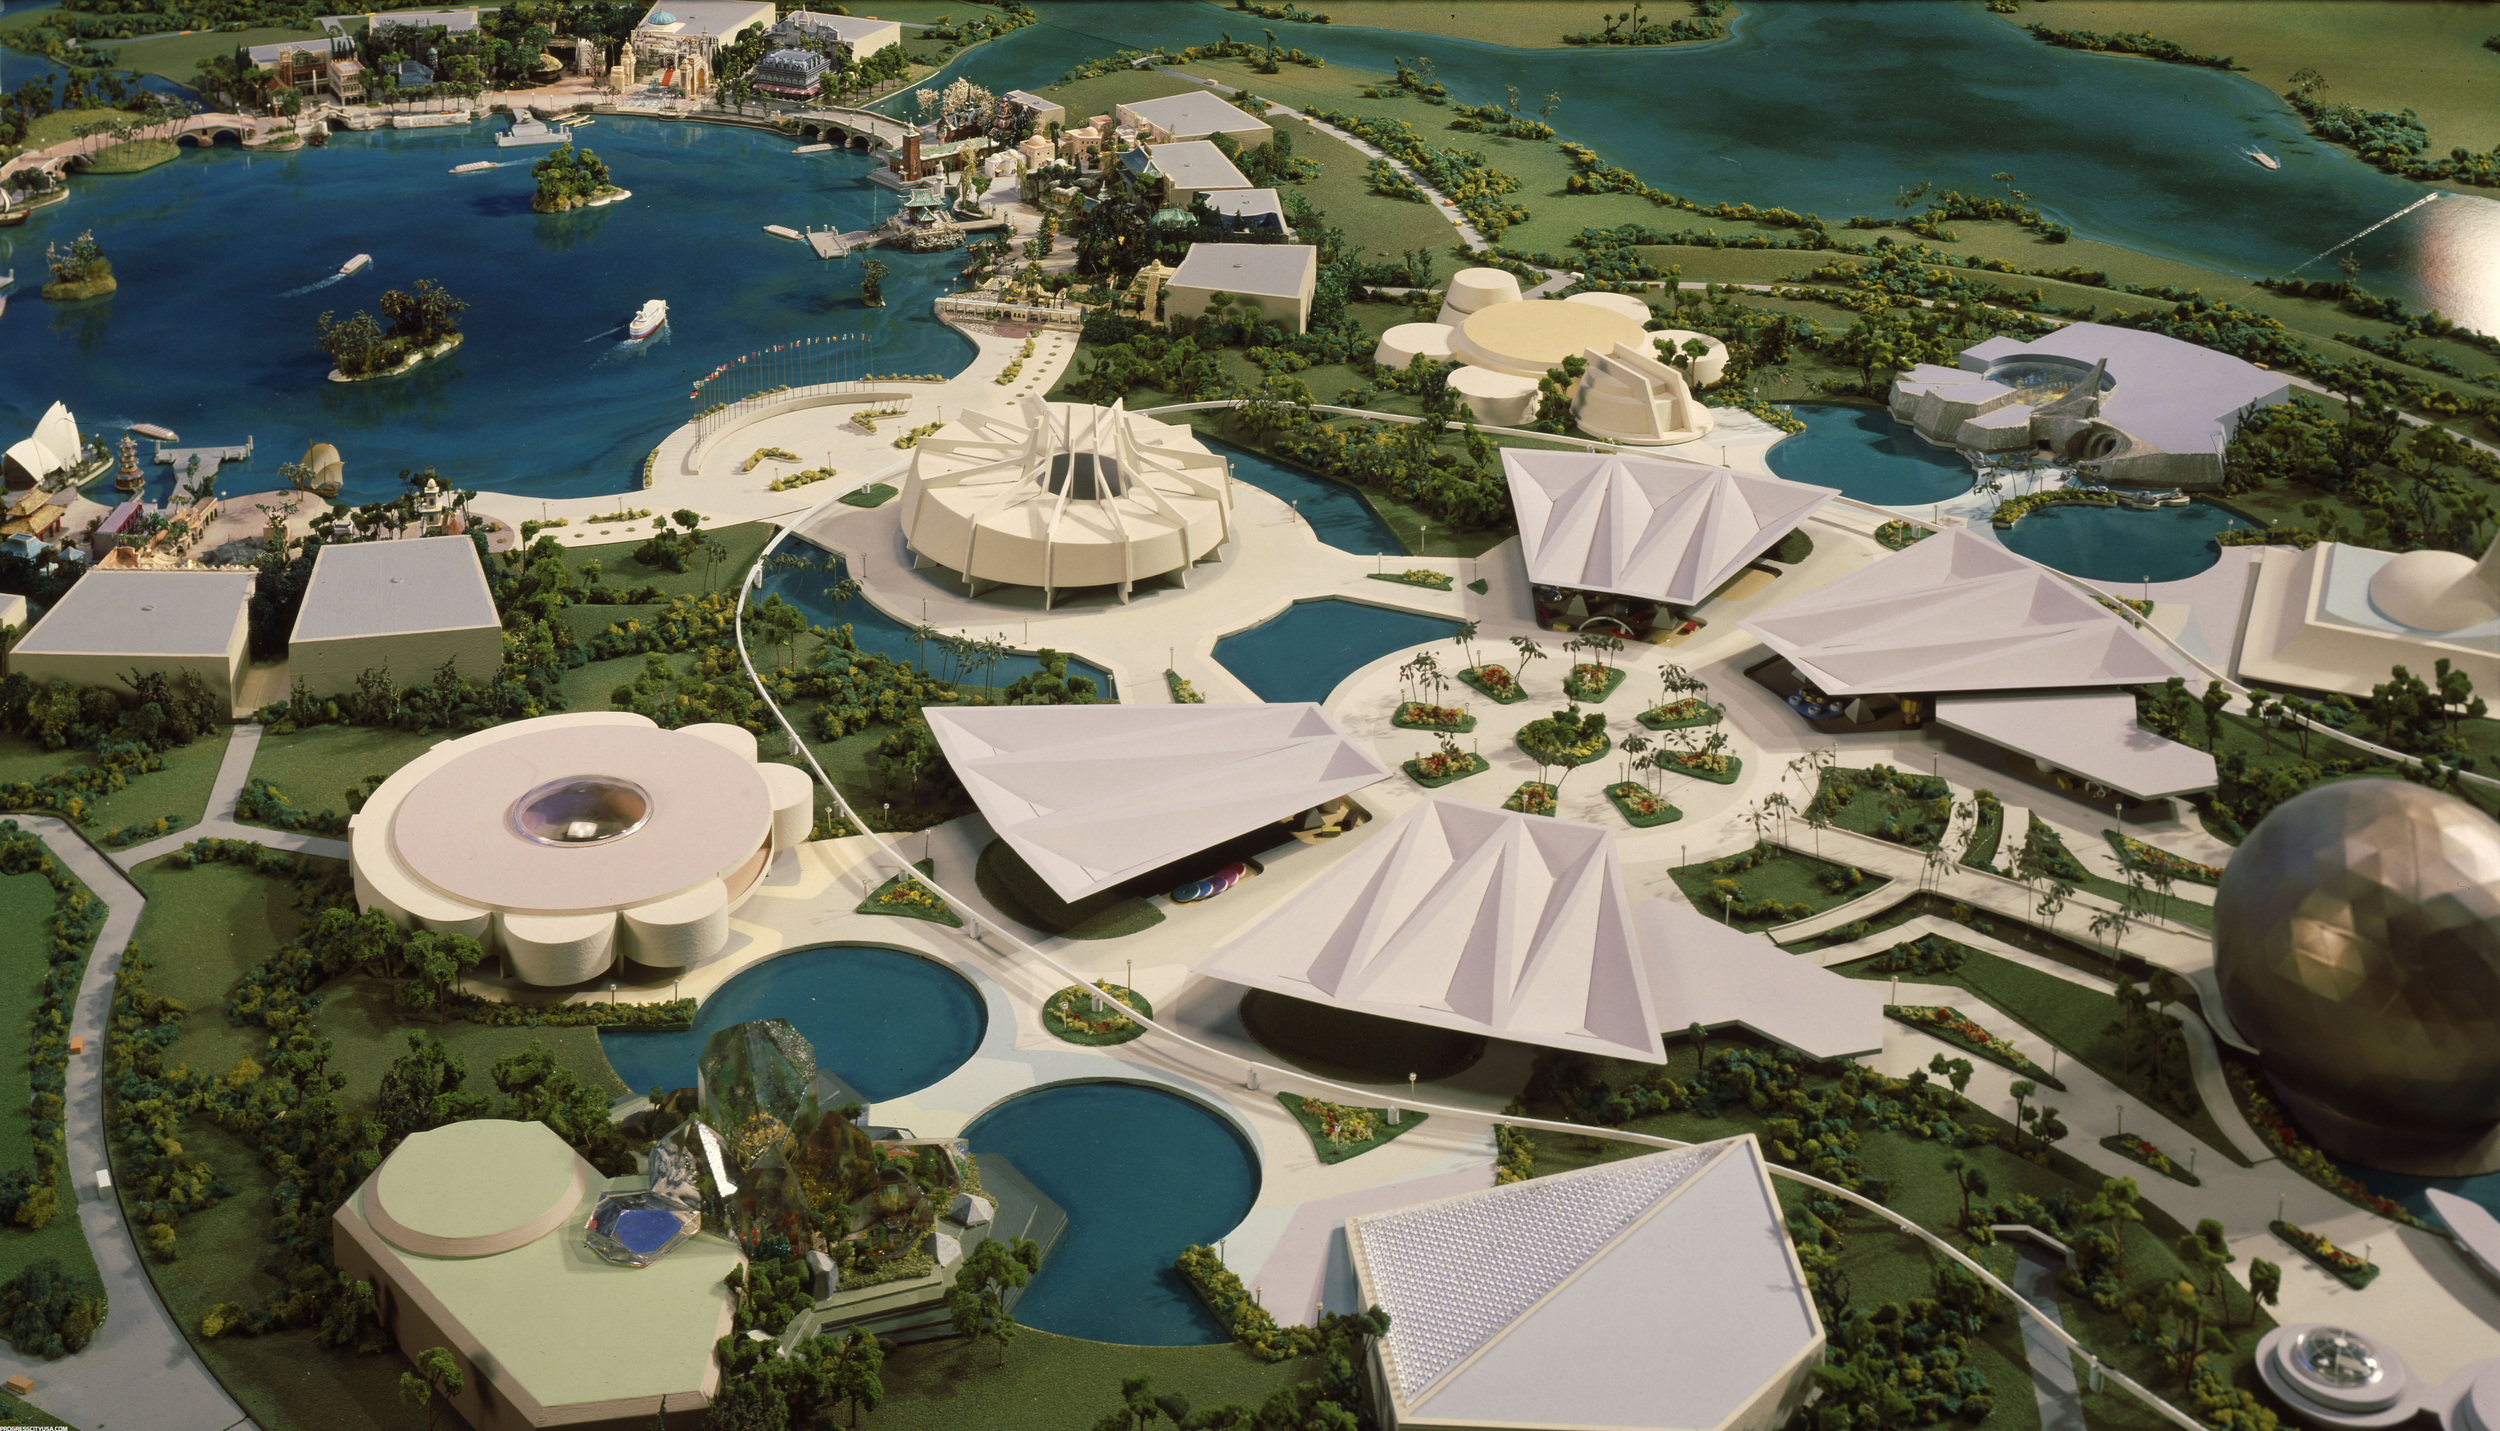 An early model of Epcot Center